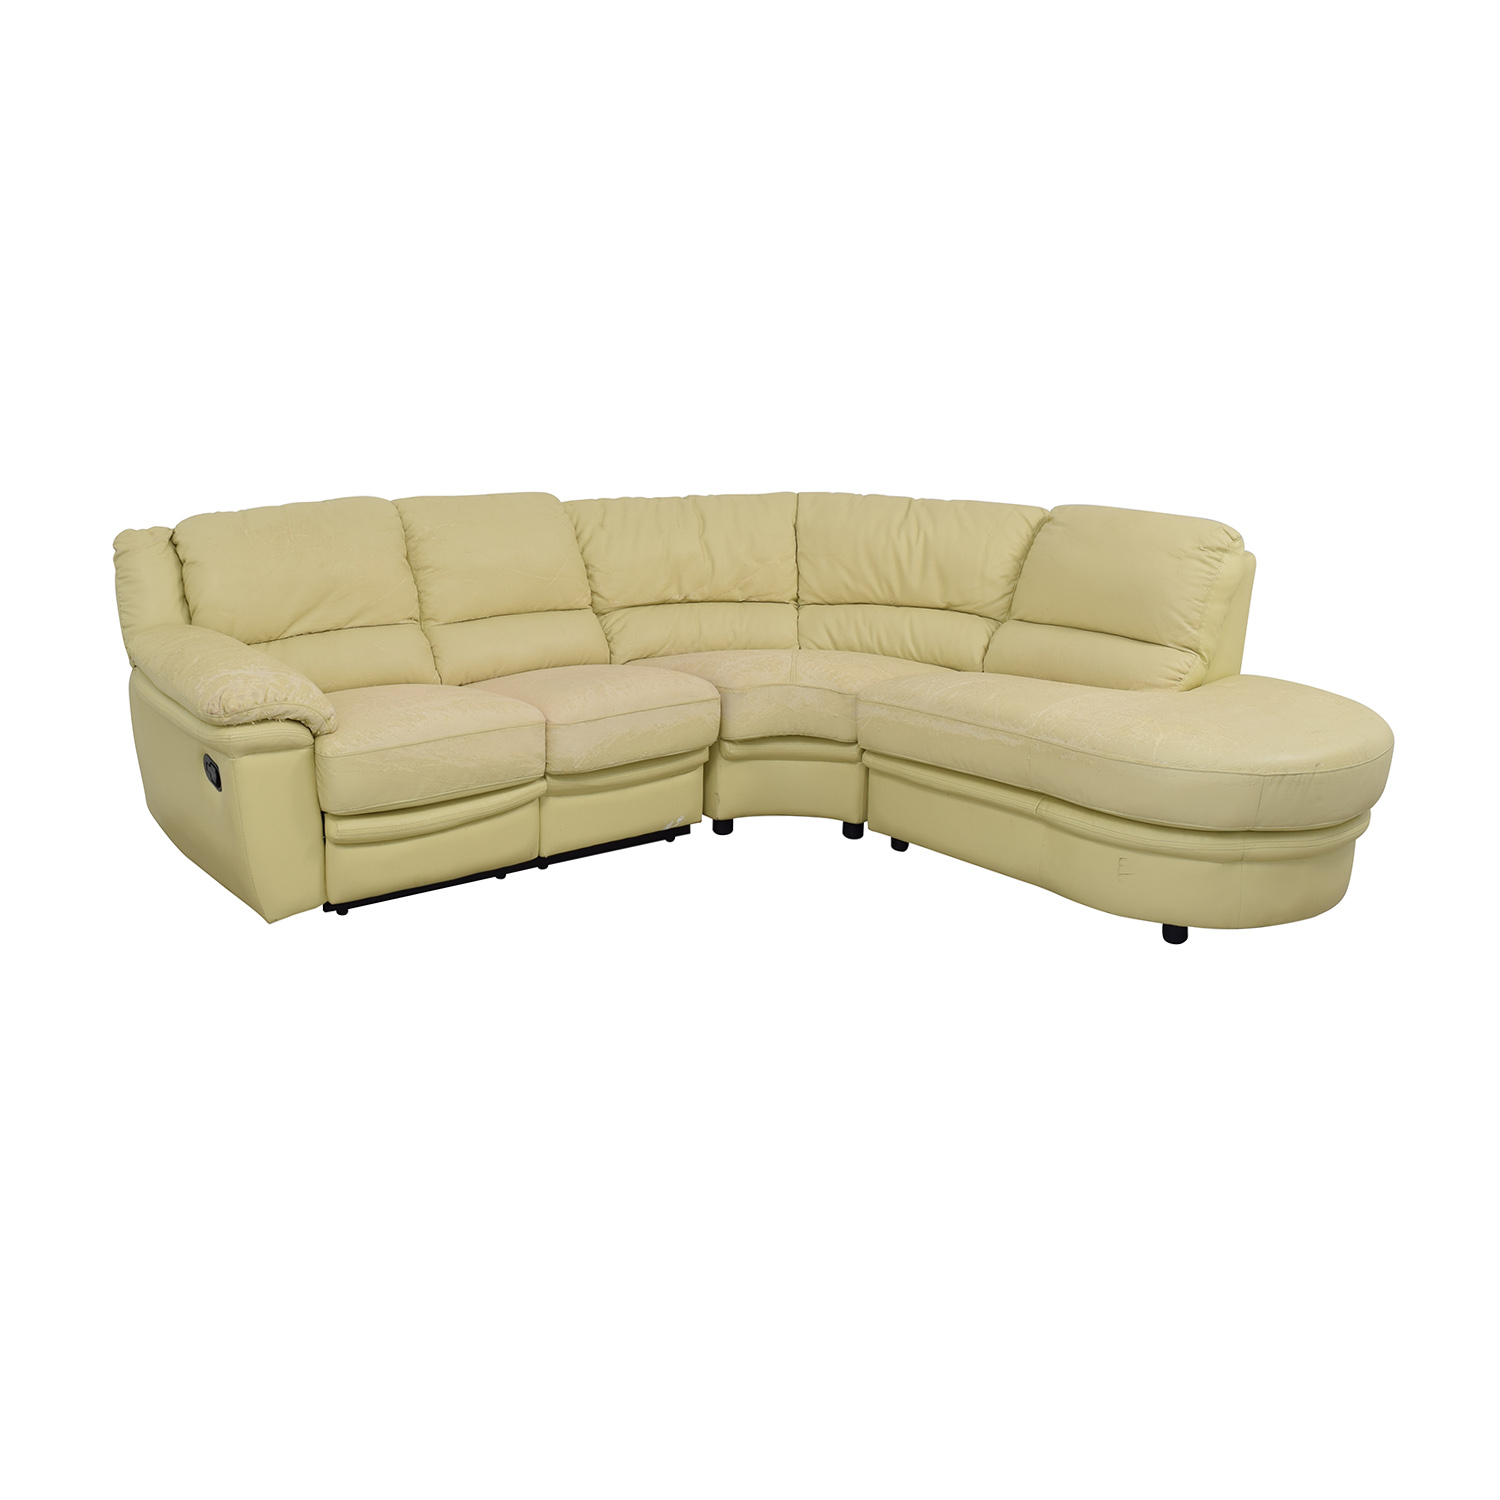 buy  Beige L-Shaped One Reclining Chair Sectional online